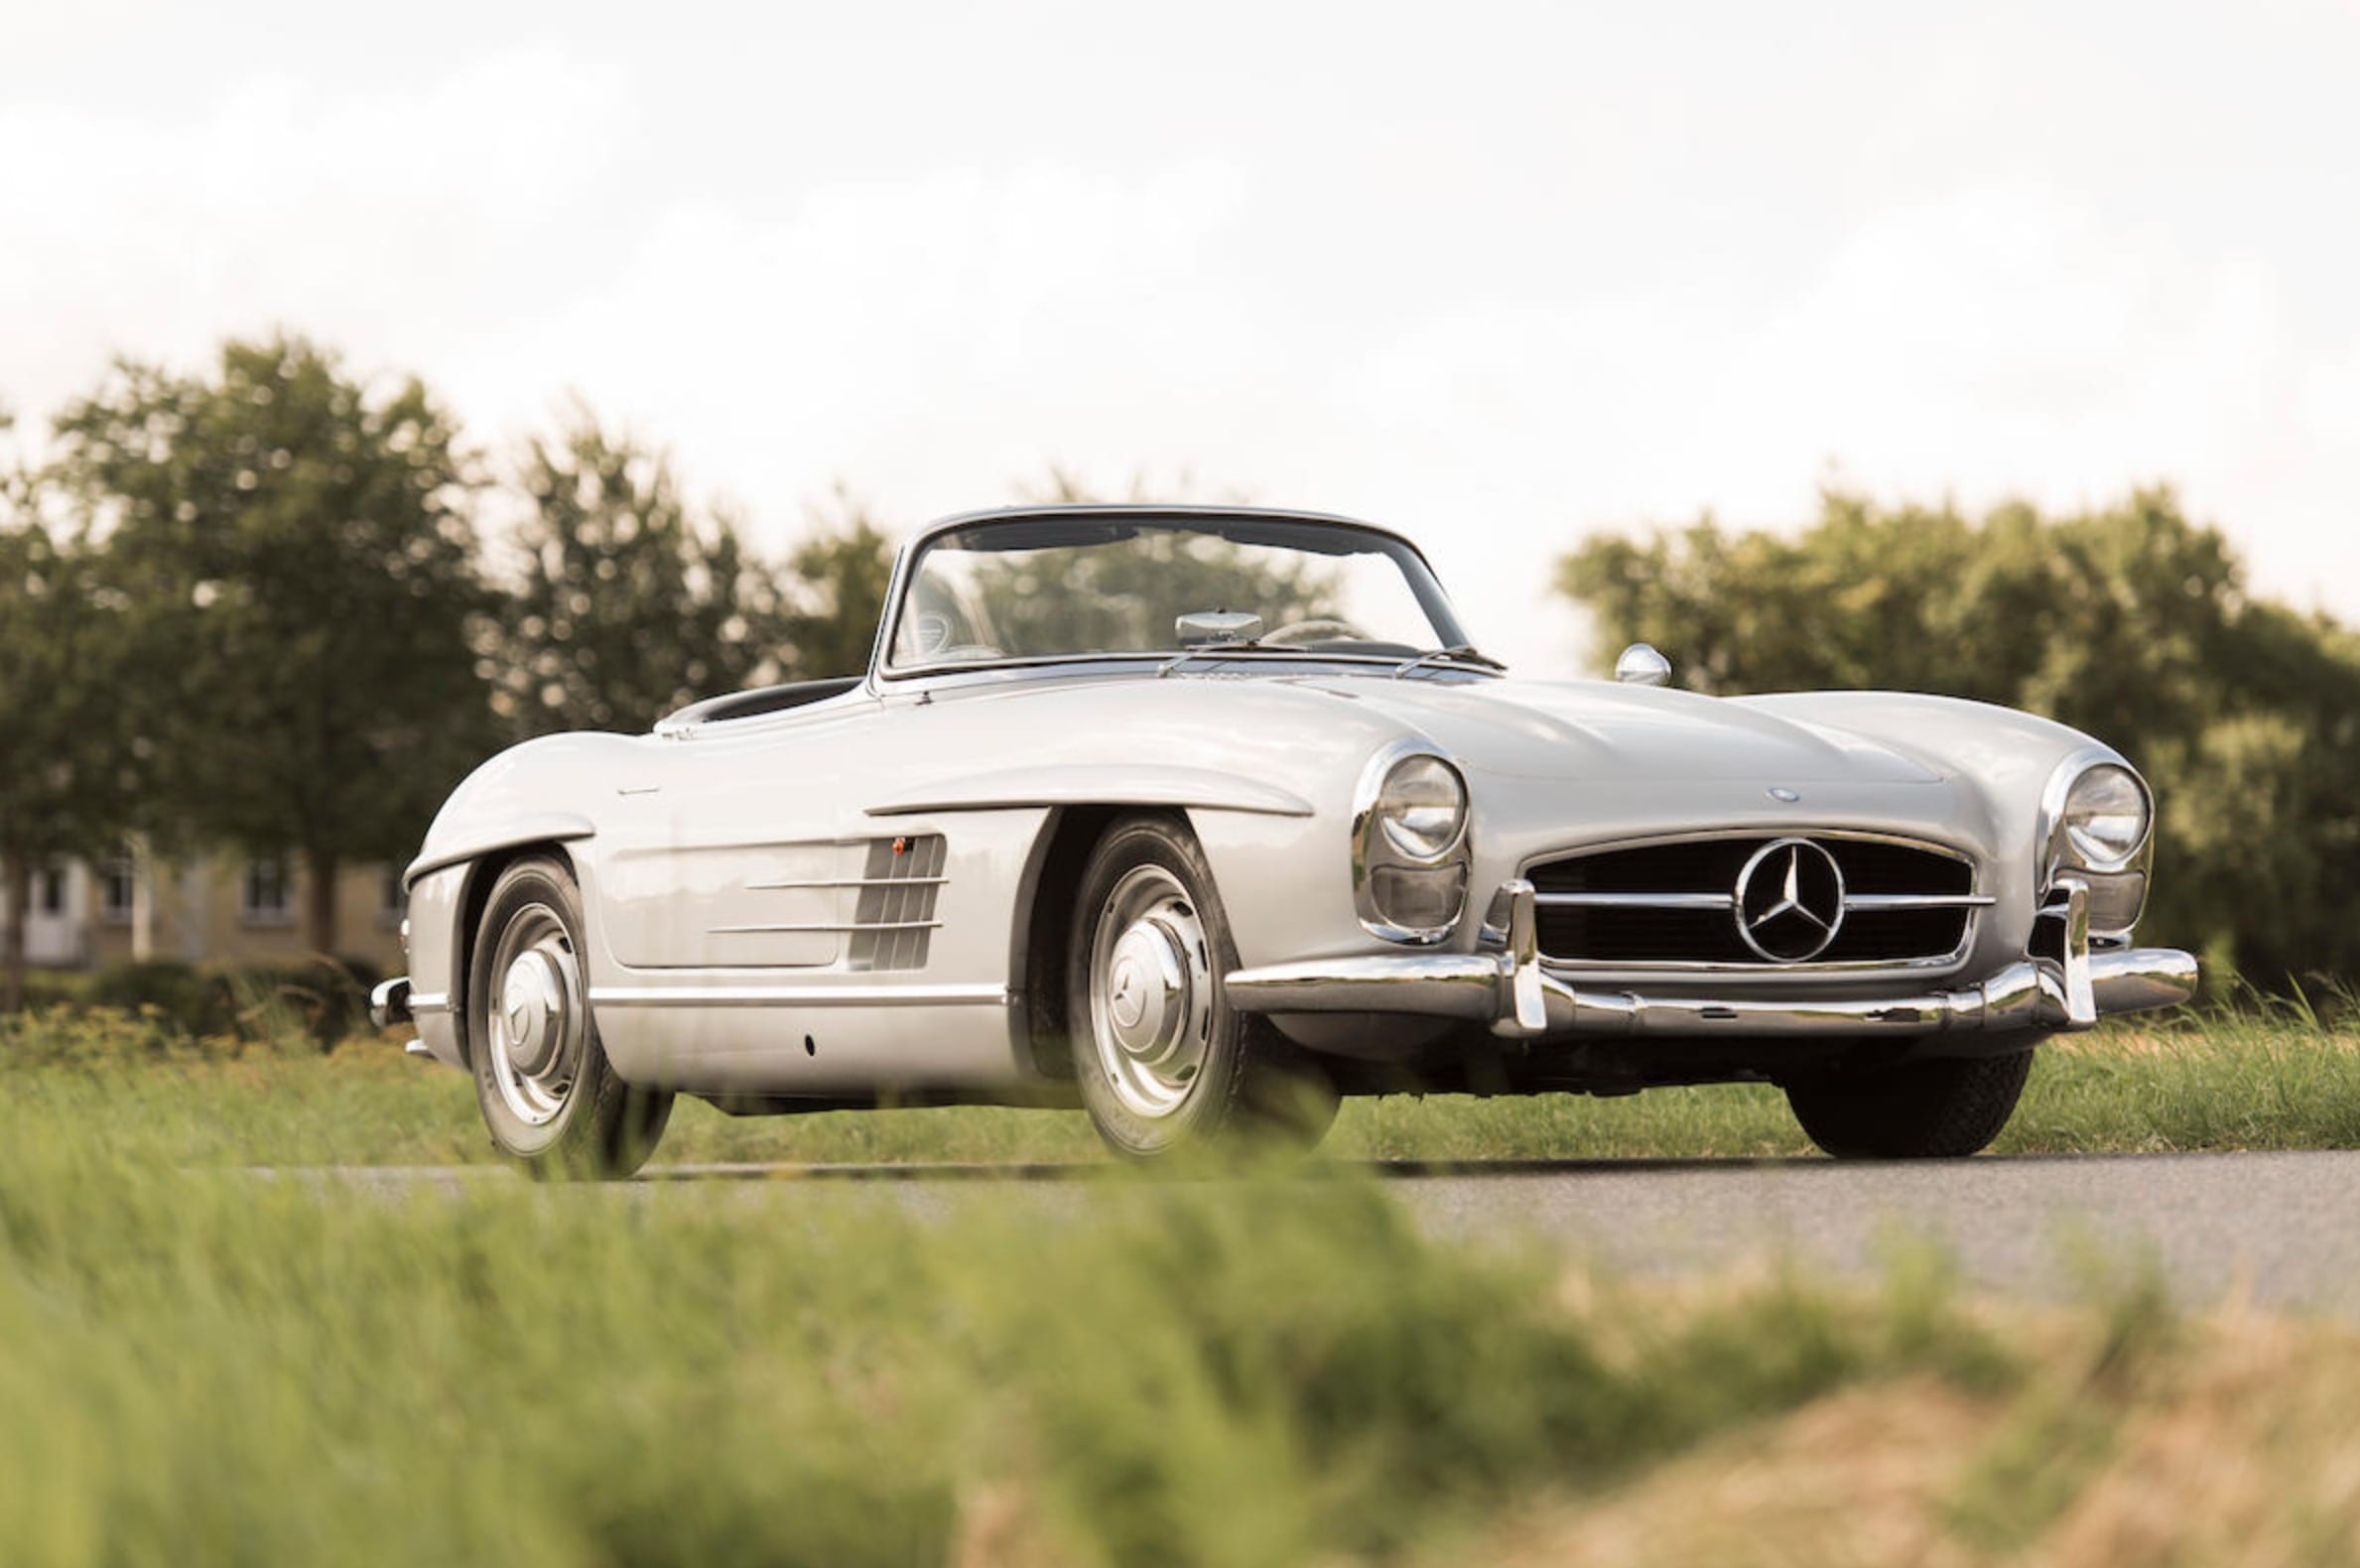 1957 mercedes benz 300 sl roadster mis coches clasicos. Black Bedroom Furniture Sets. Home Design Ideas